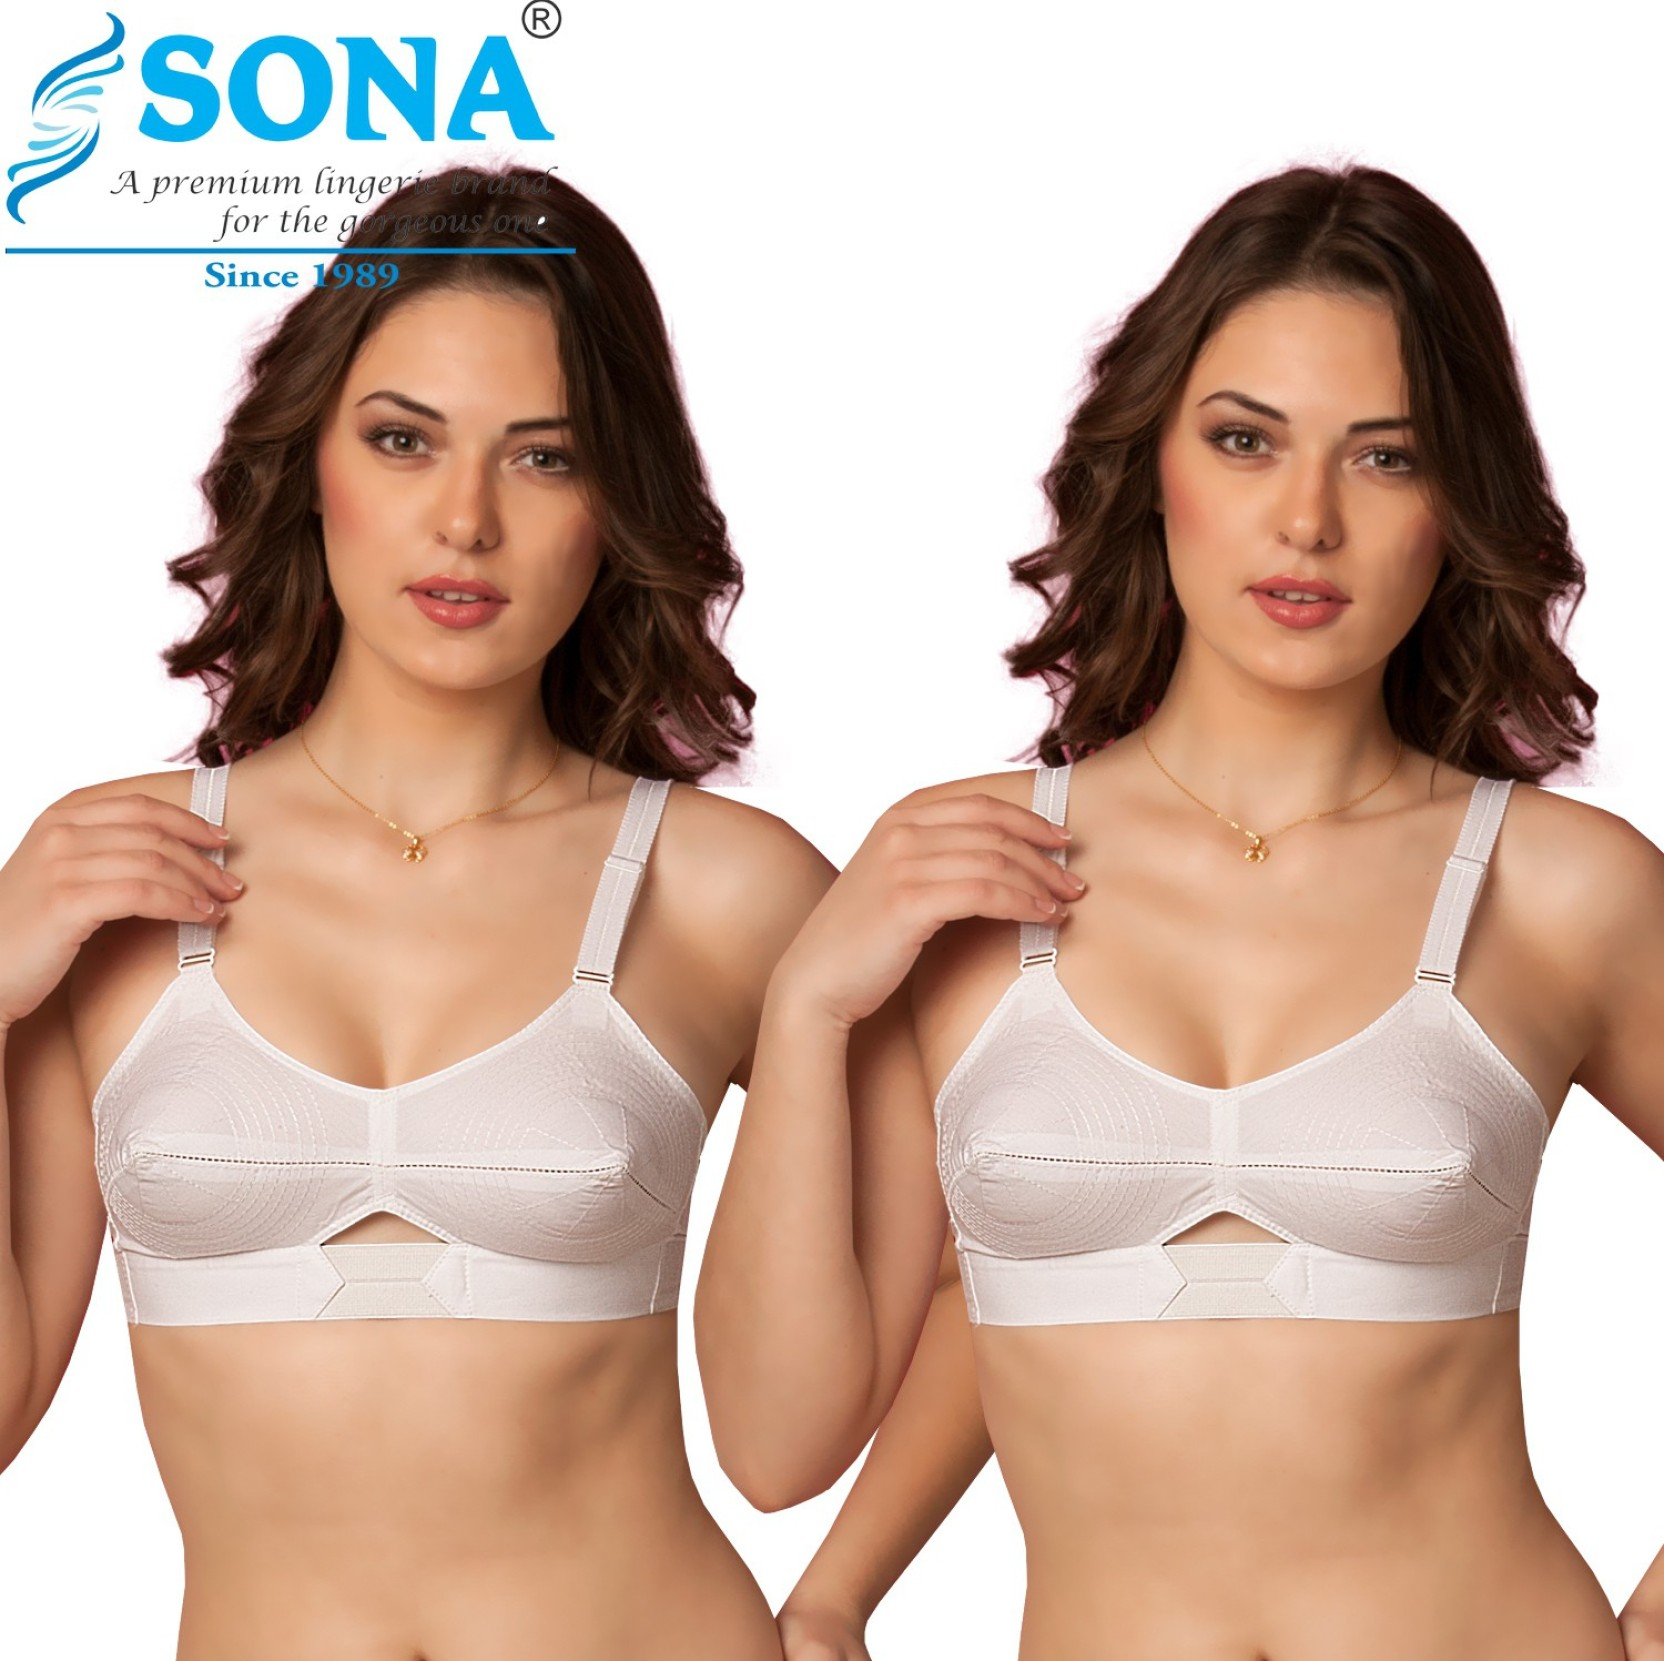 581cb6e0c5e Sona Moving Elastic Strap Full Cup Plus Size Cotton Bra (Pack of 2) Women s  Full Coverage Non Padded Bra (Multicolor)